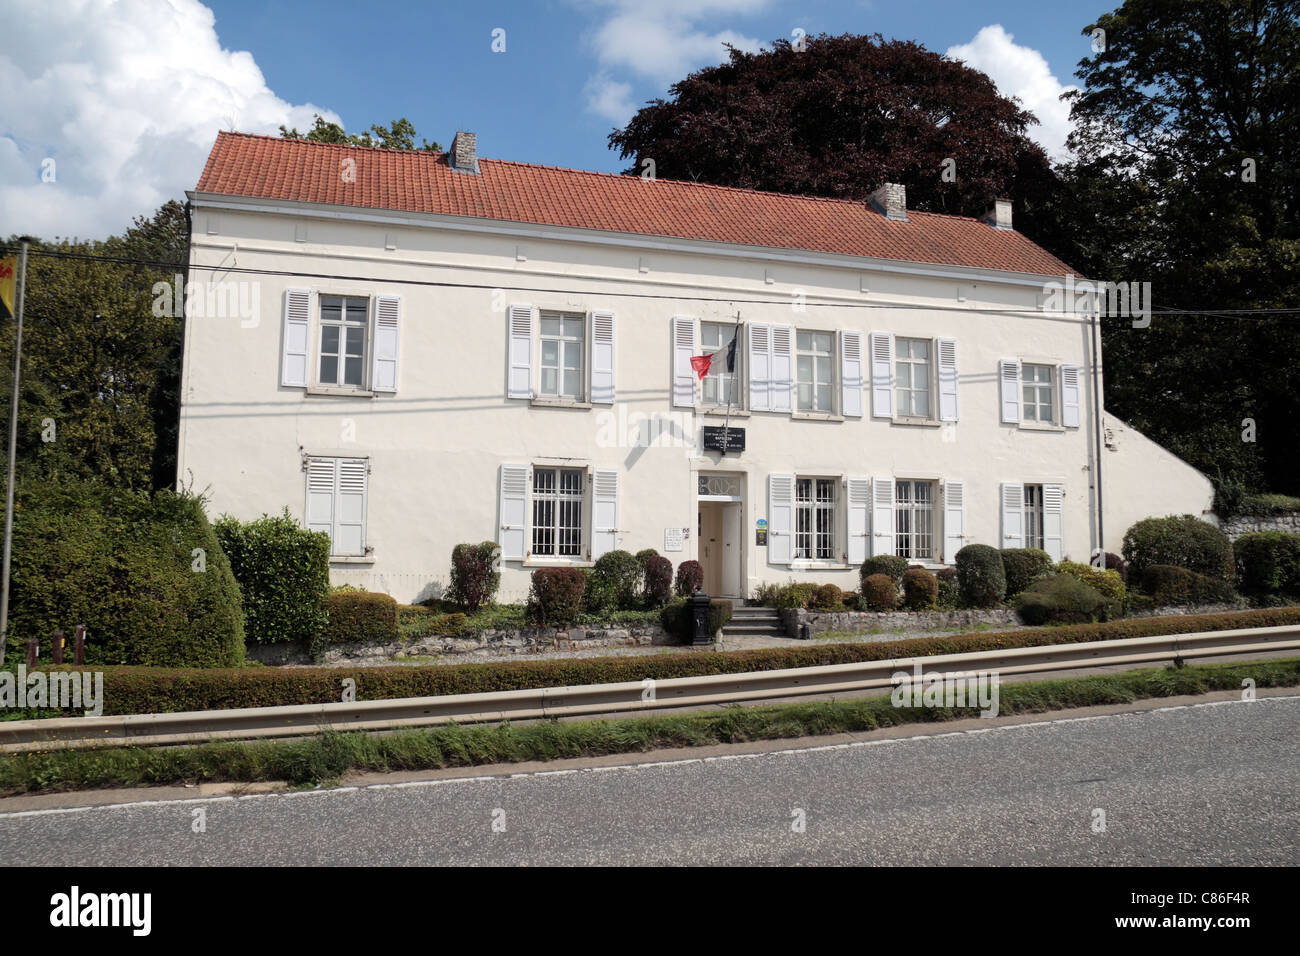 The old farmhouse 'Le Caillou', Napoleon's headquarters (where he slept) during the Battle of Waterloo, - Stock Image